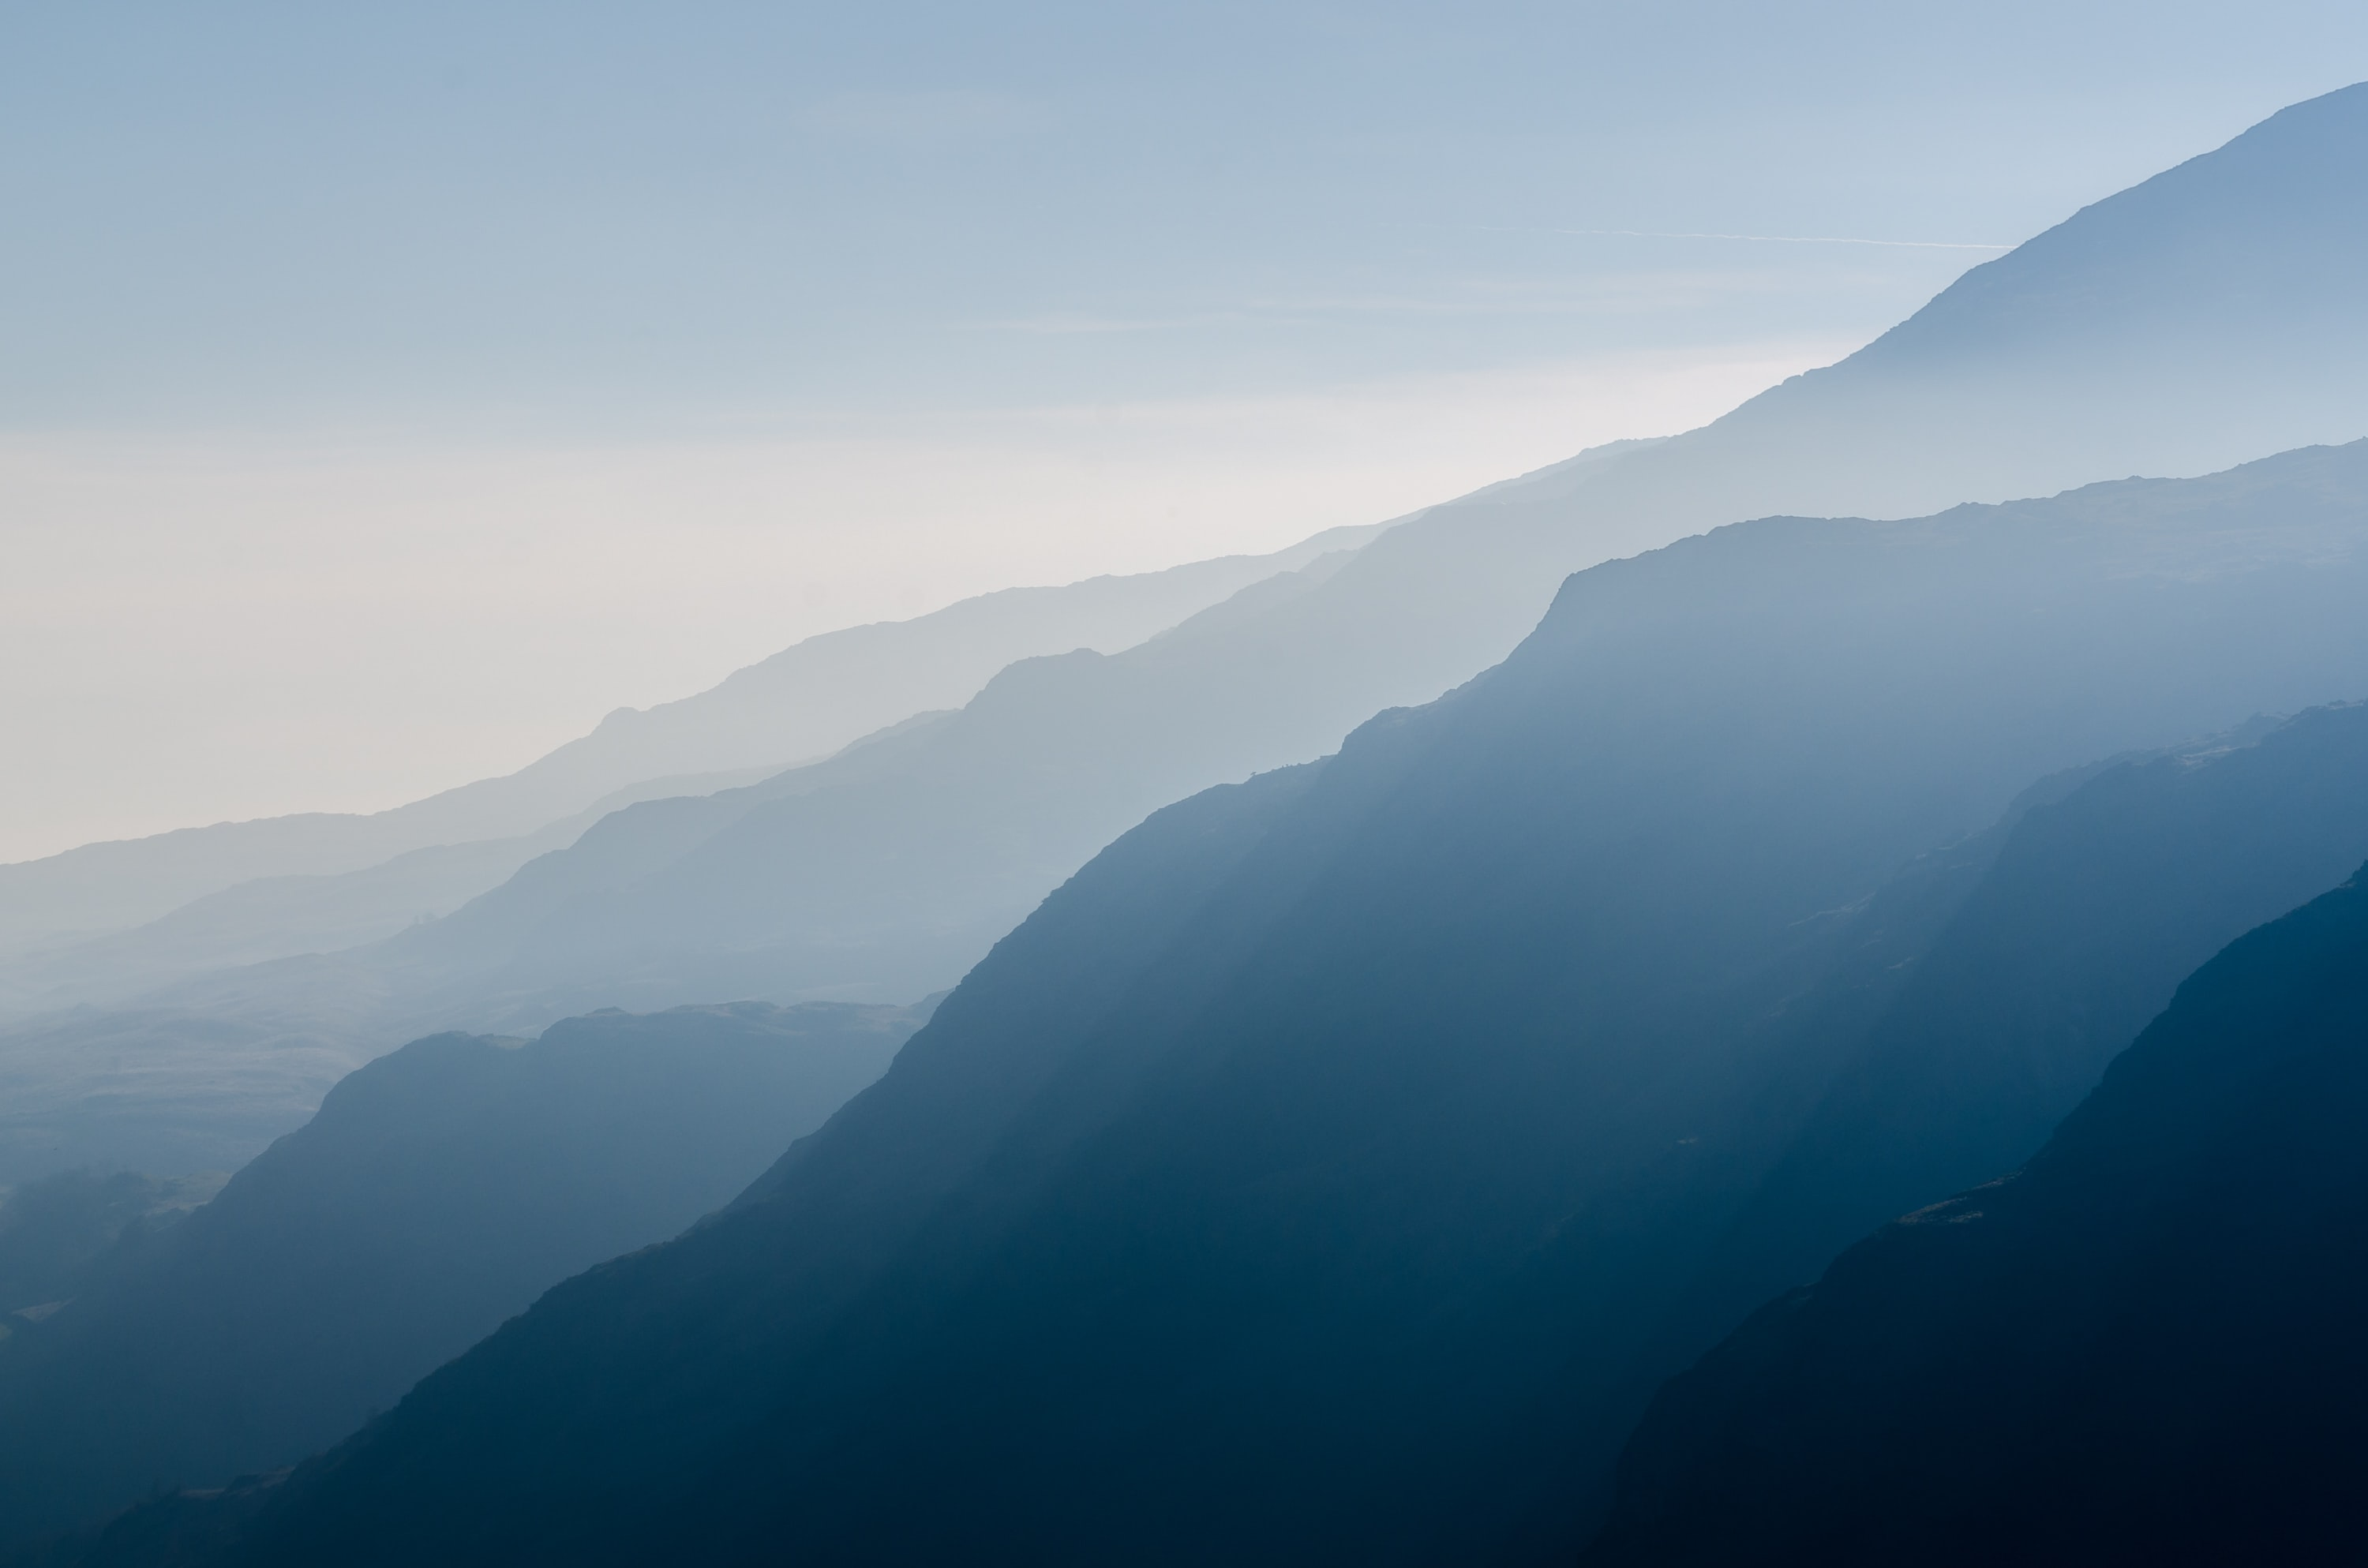 Mac Wallpapers  C B Haze Over Steeply Descending Mountain Ridges